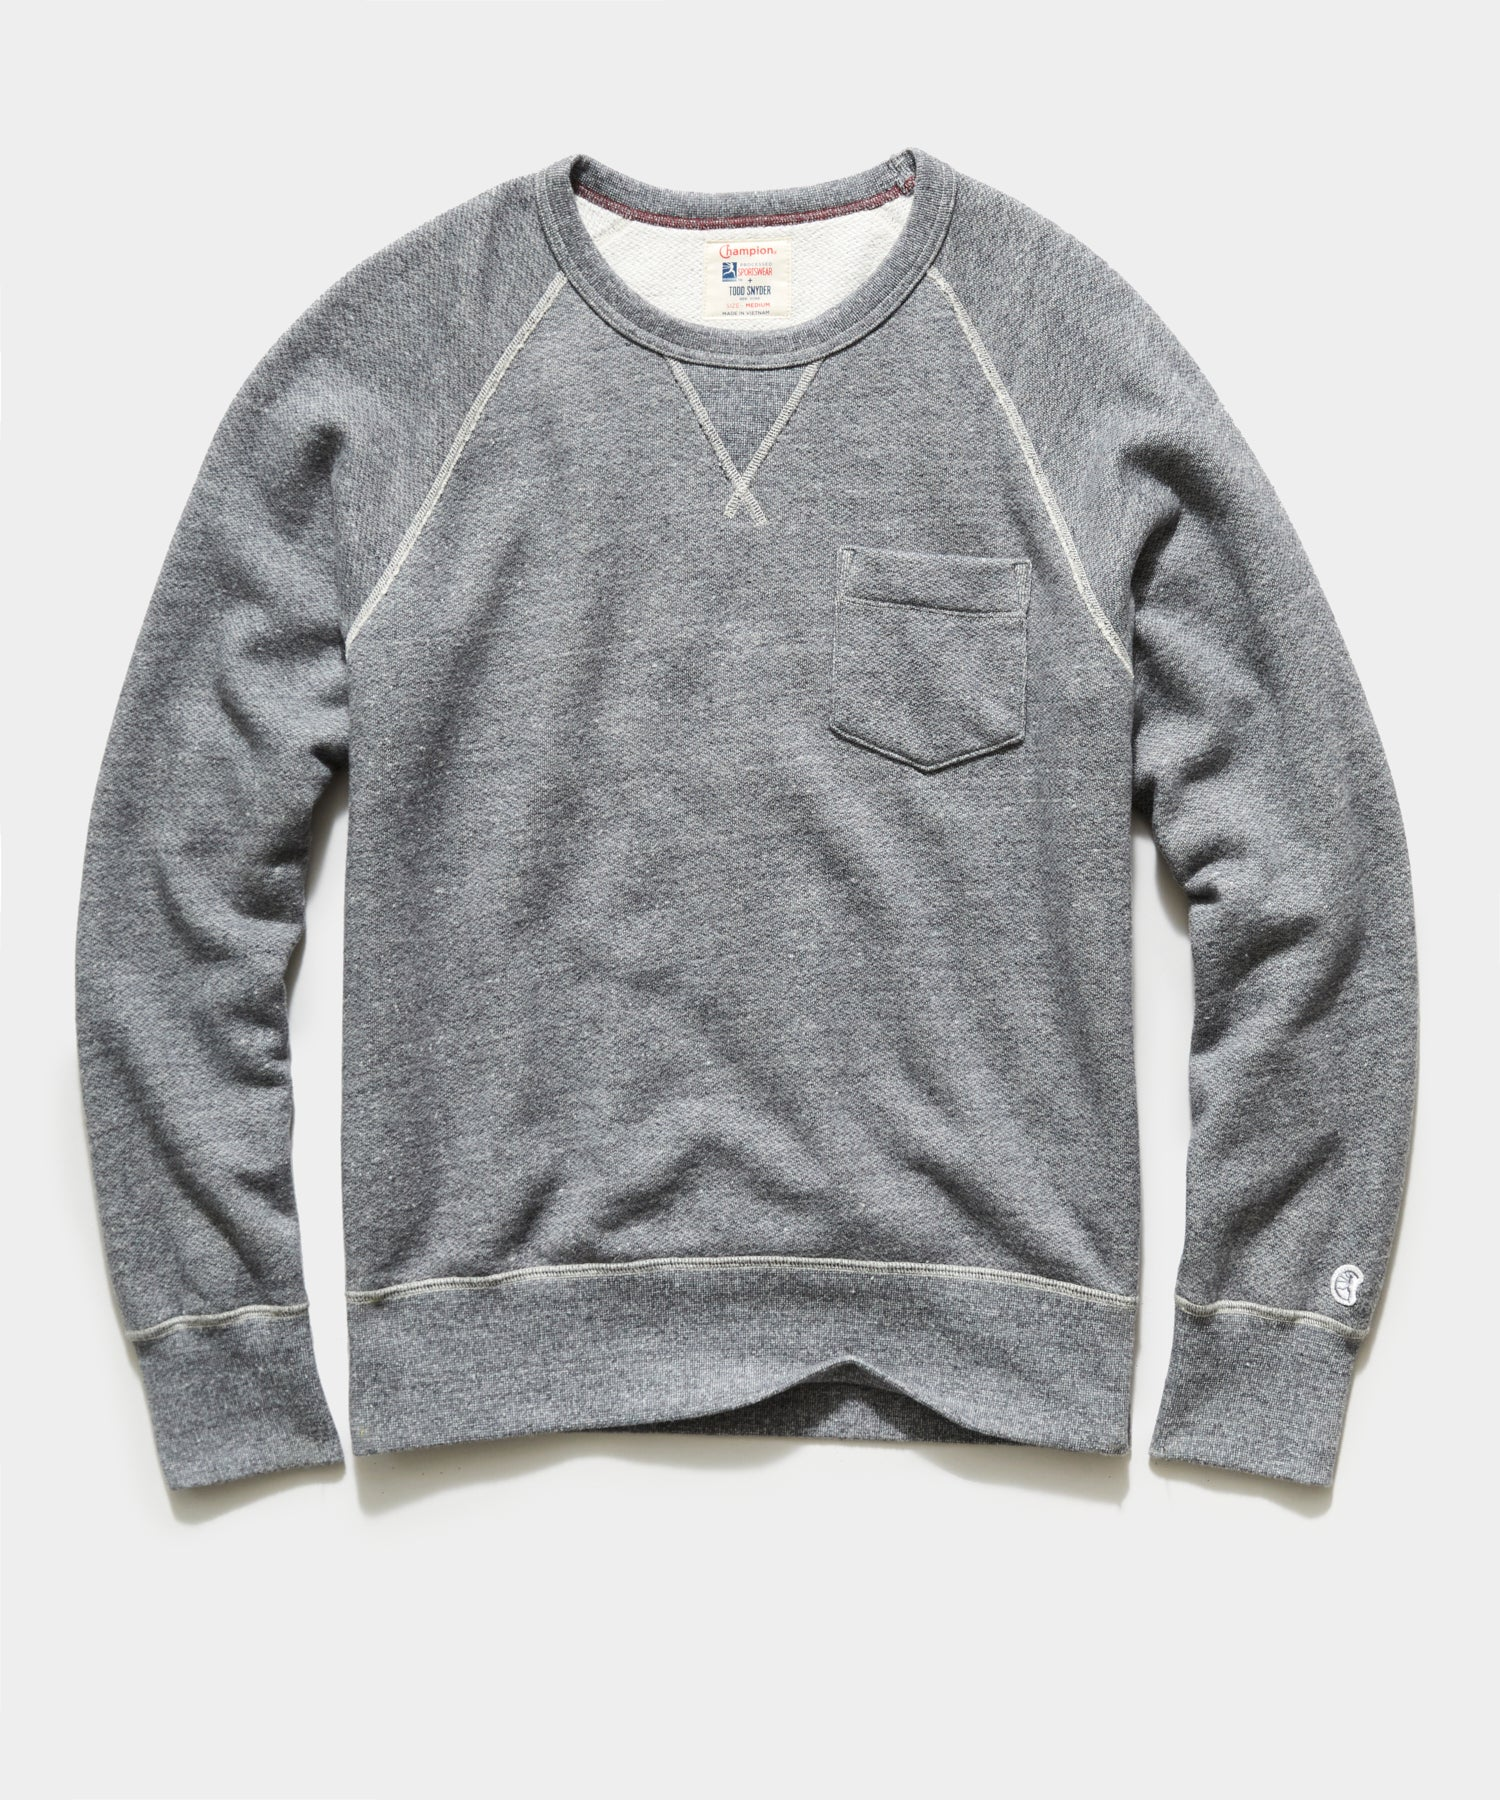 Midweight Pocket Sweatshirt in Light Grey Mix